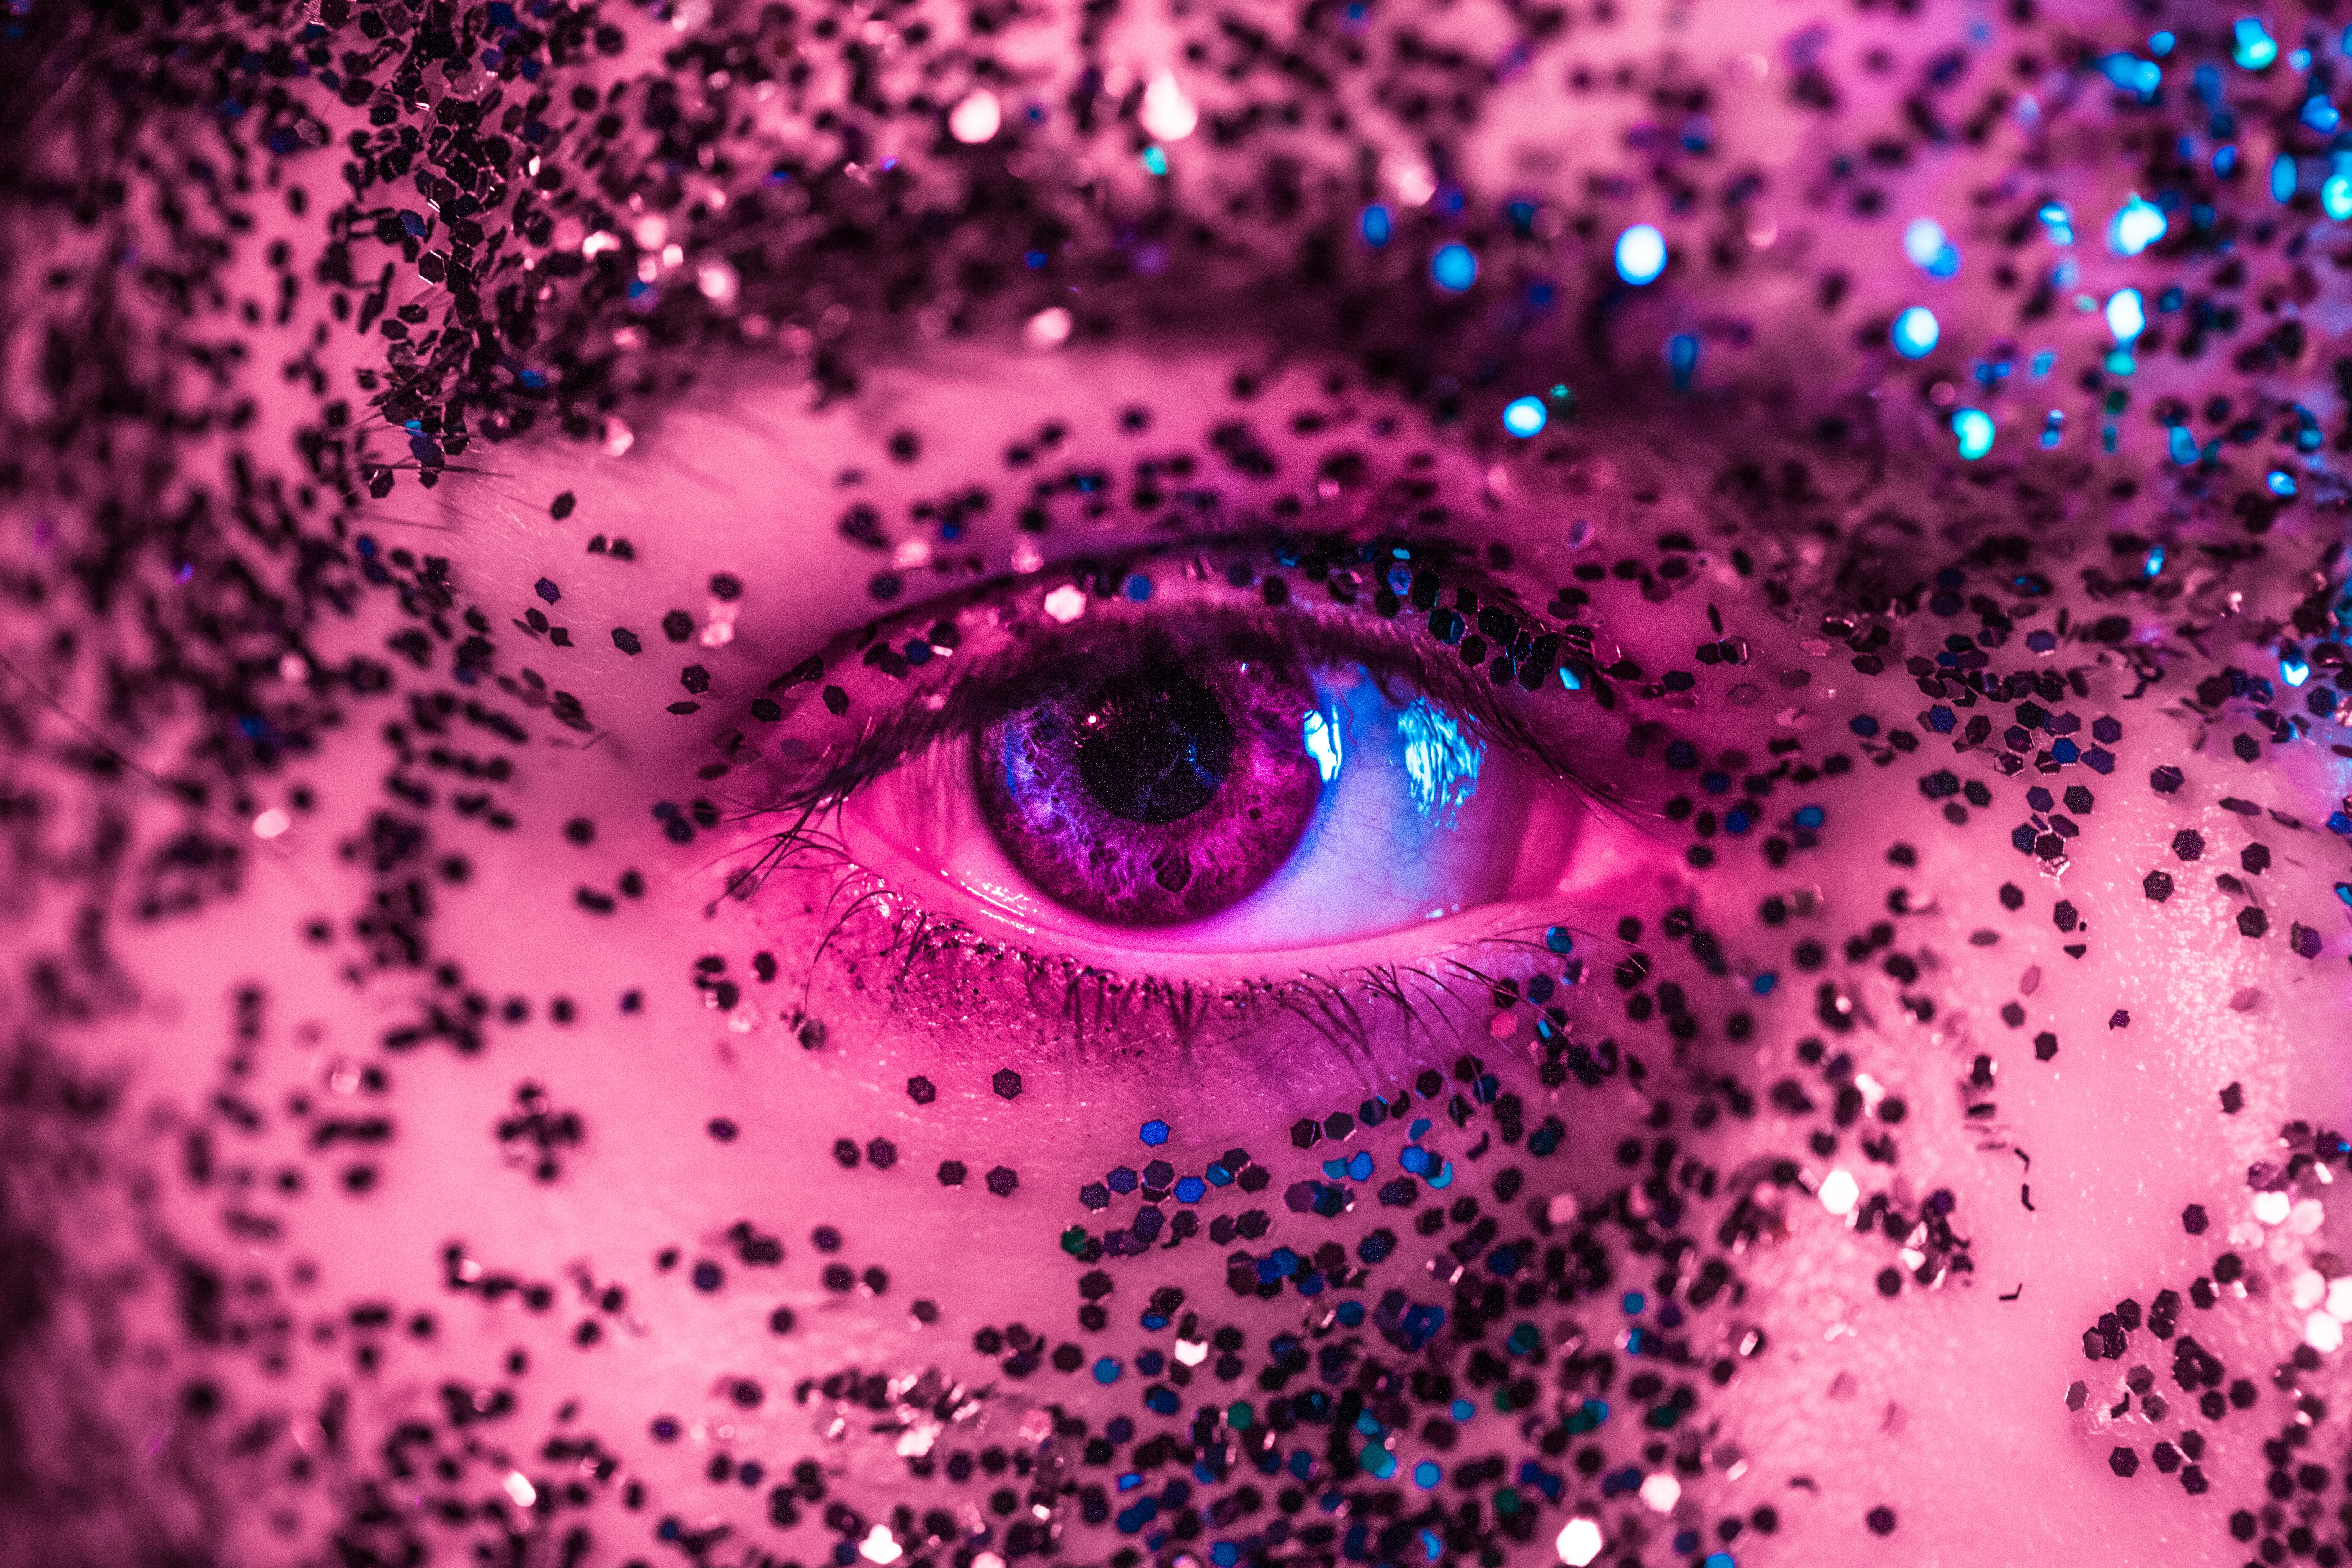 closeup photography of person's eye with glitters